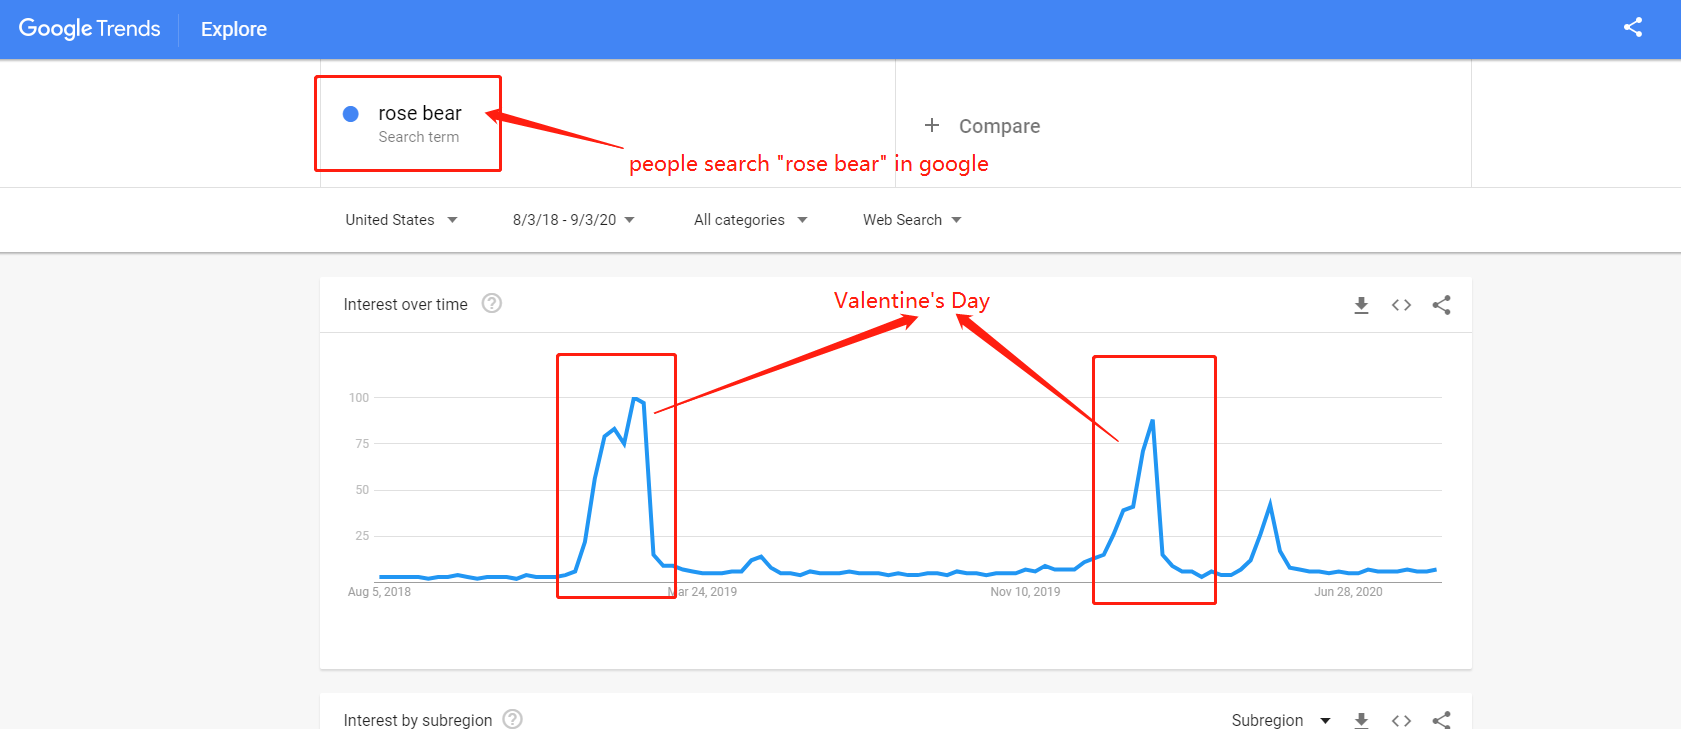 rose bear google trend